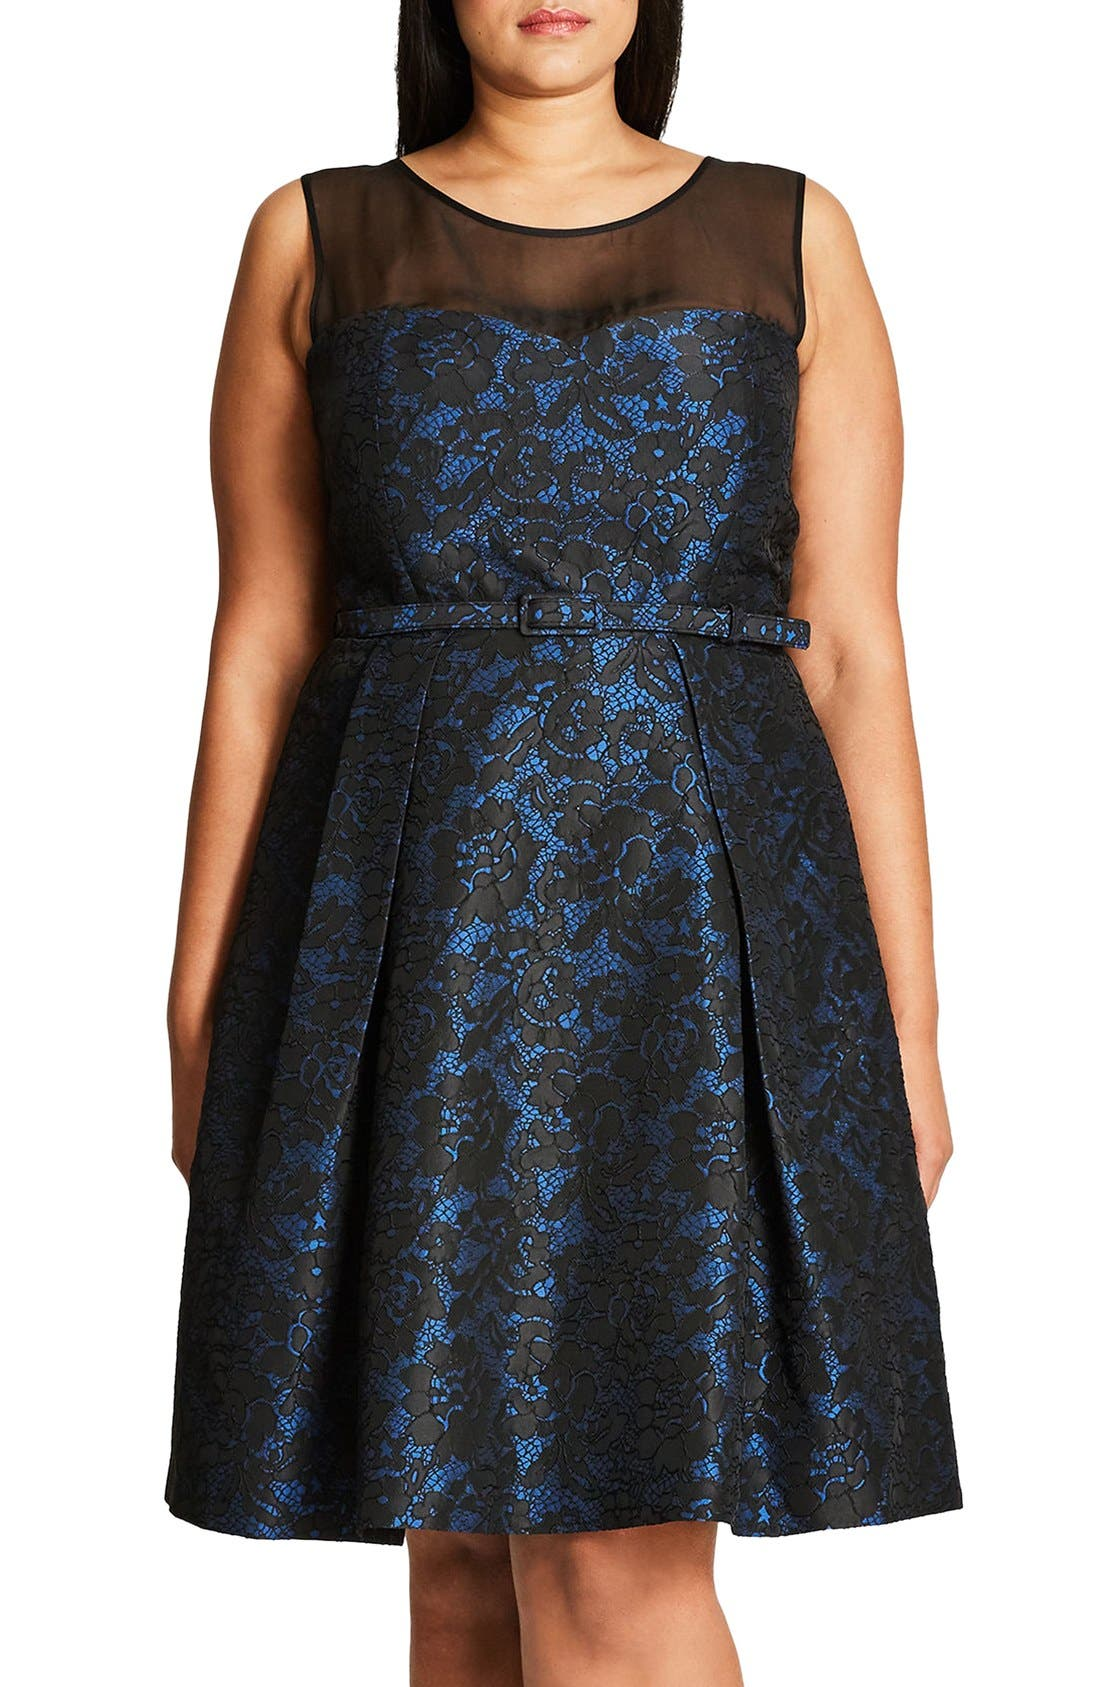 CITY CHIC 'After Dark' Lace Fit & Flare